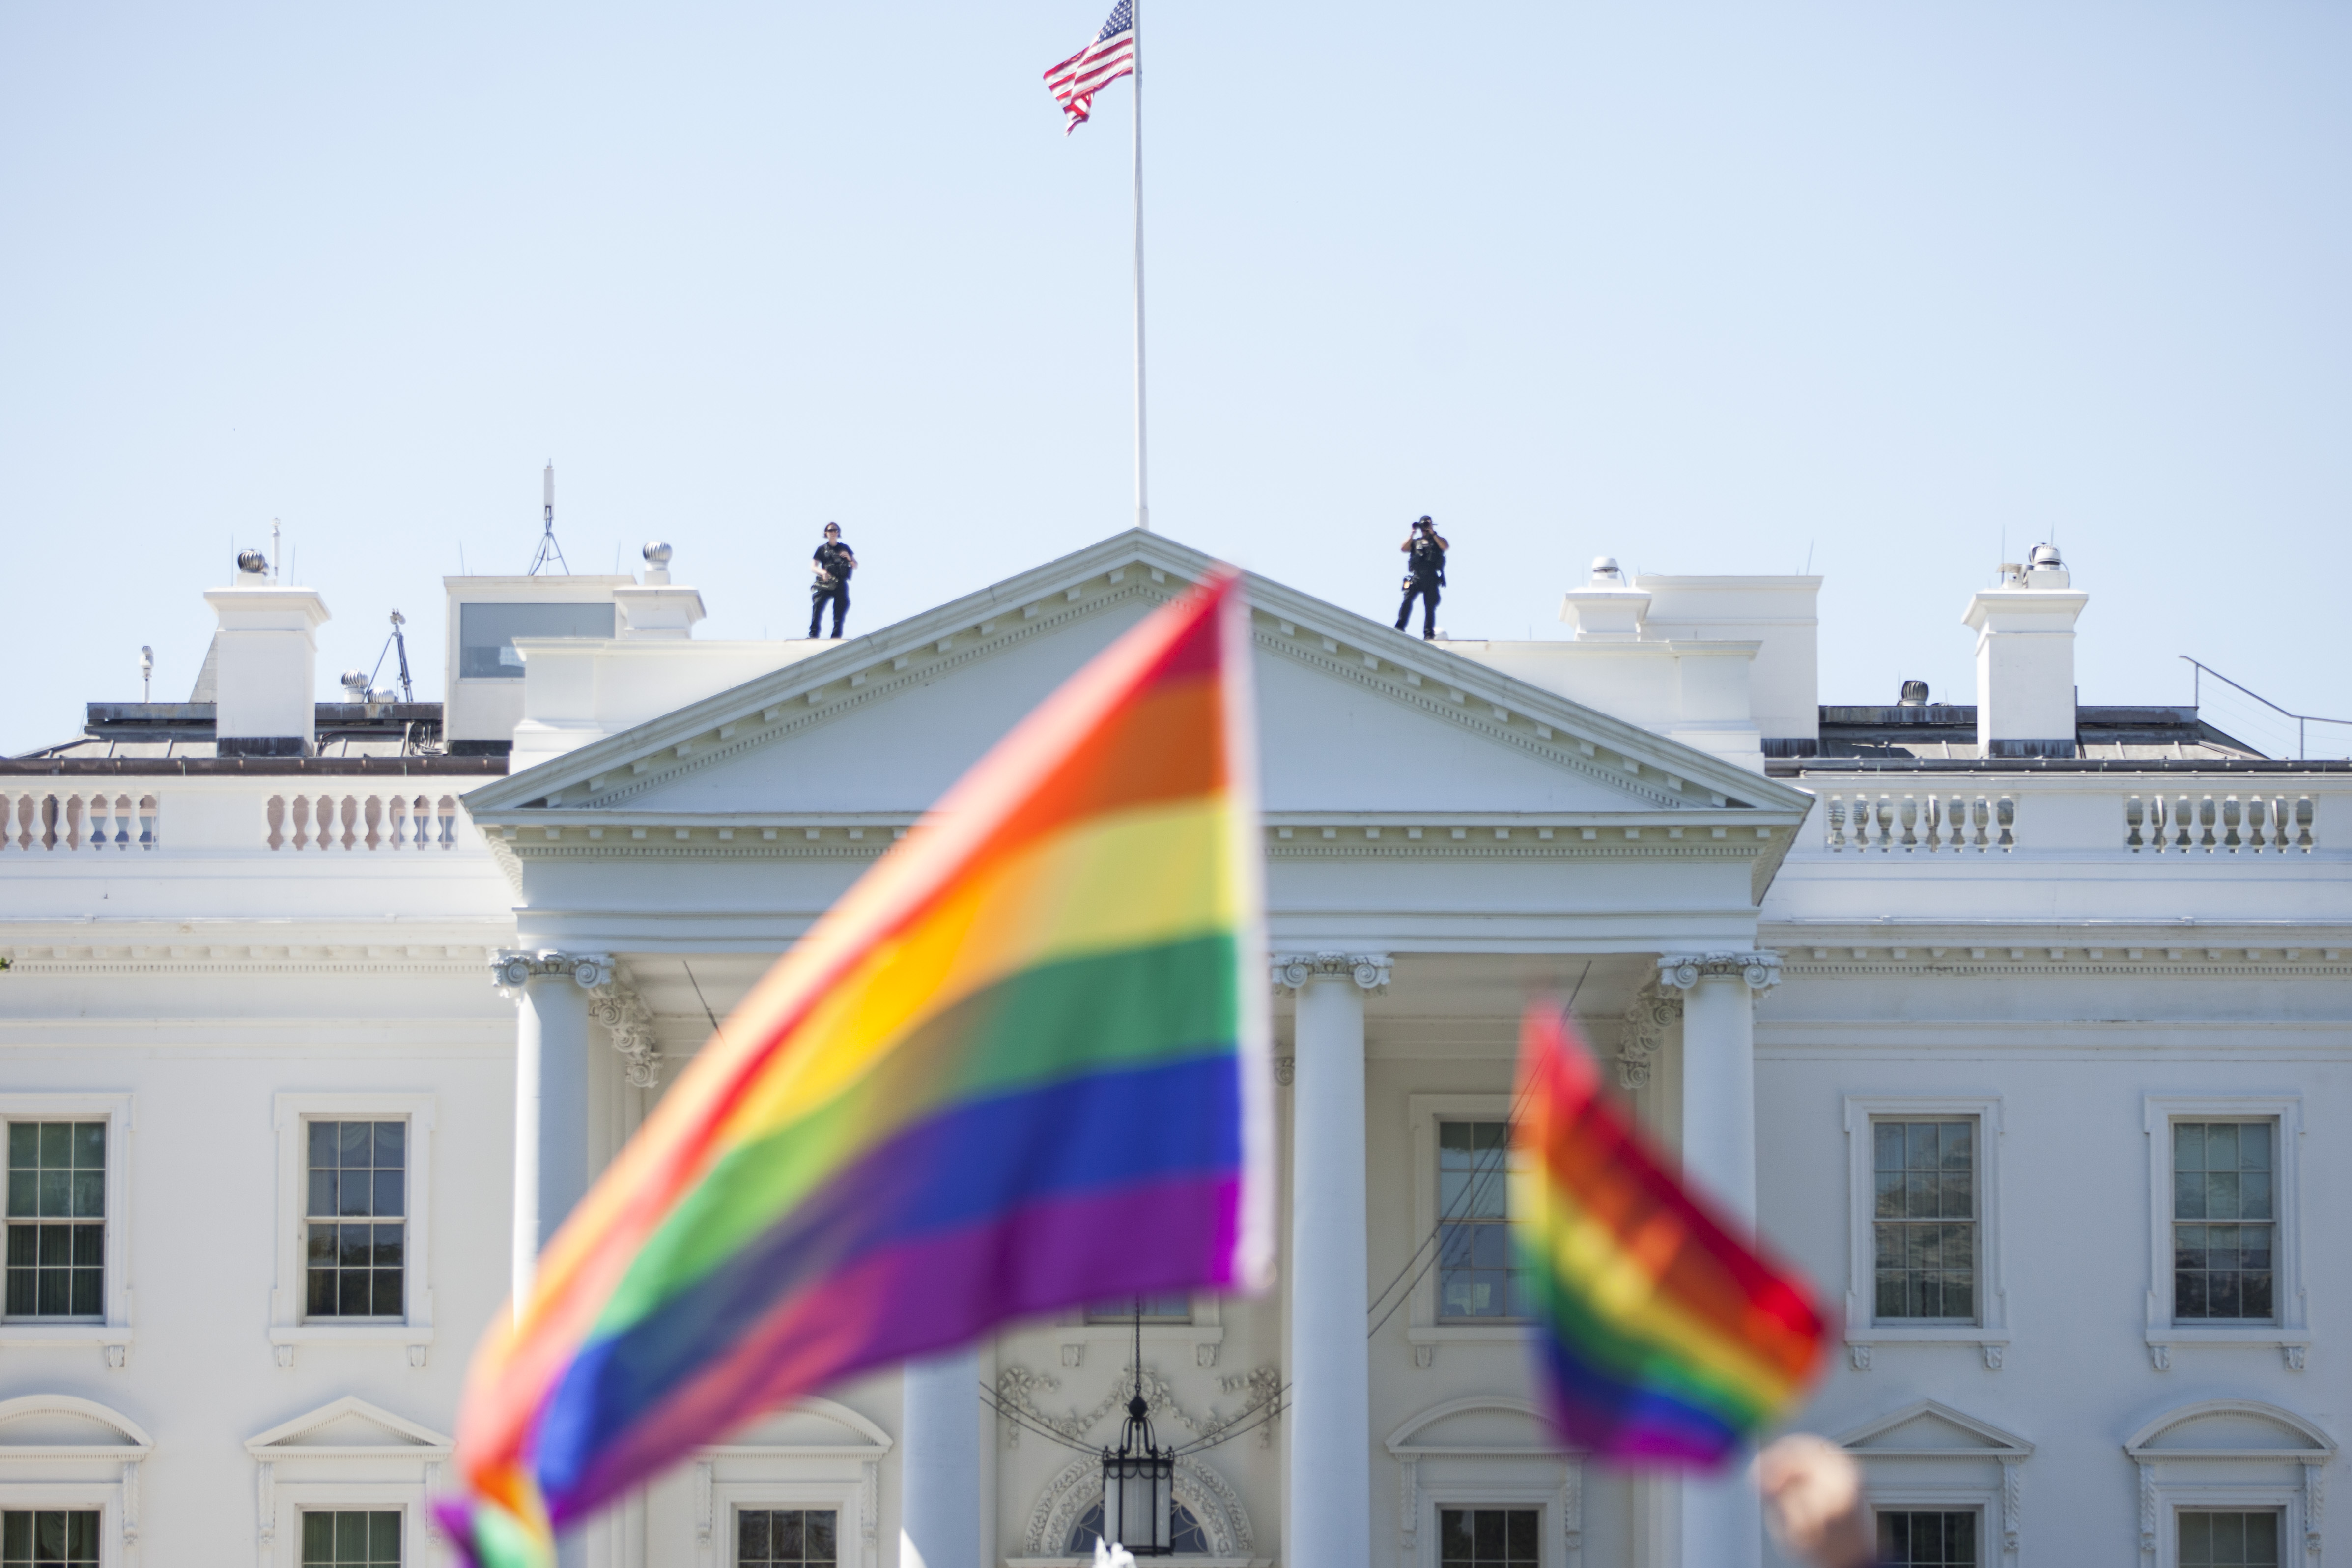 The House just passed a sweeping LGBTQ rights bill